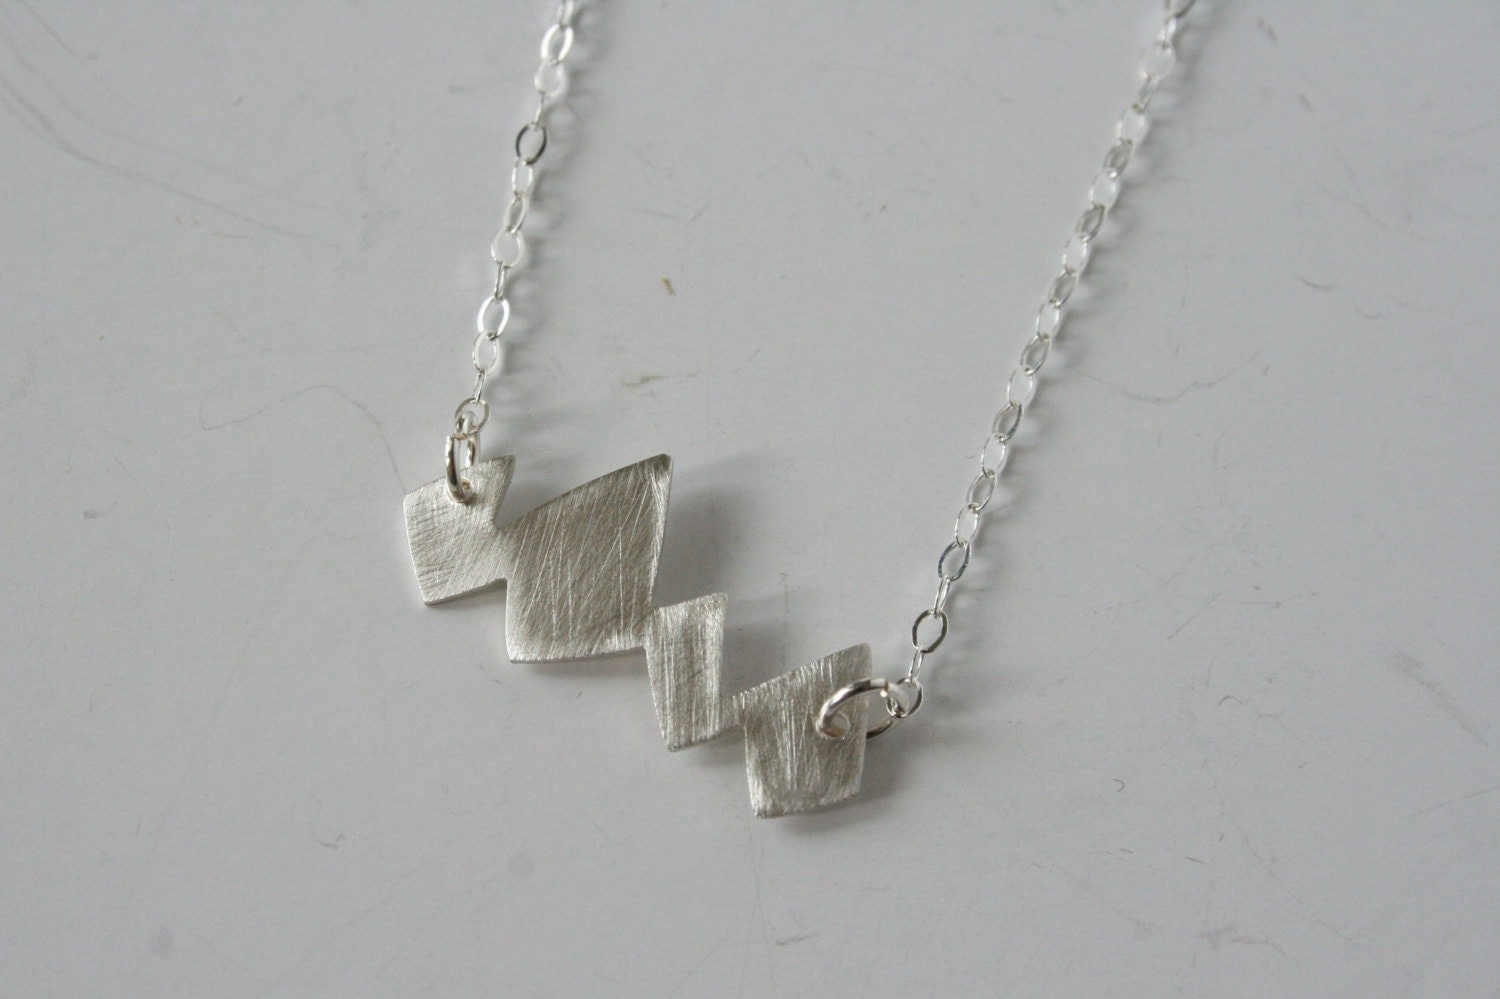 silver mountain necklace mountain jewelry jagged jewelry. Black Bedroom Furniture Sets. Home Design Ideas